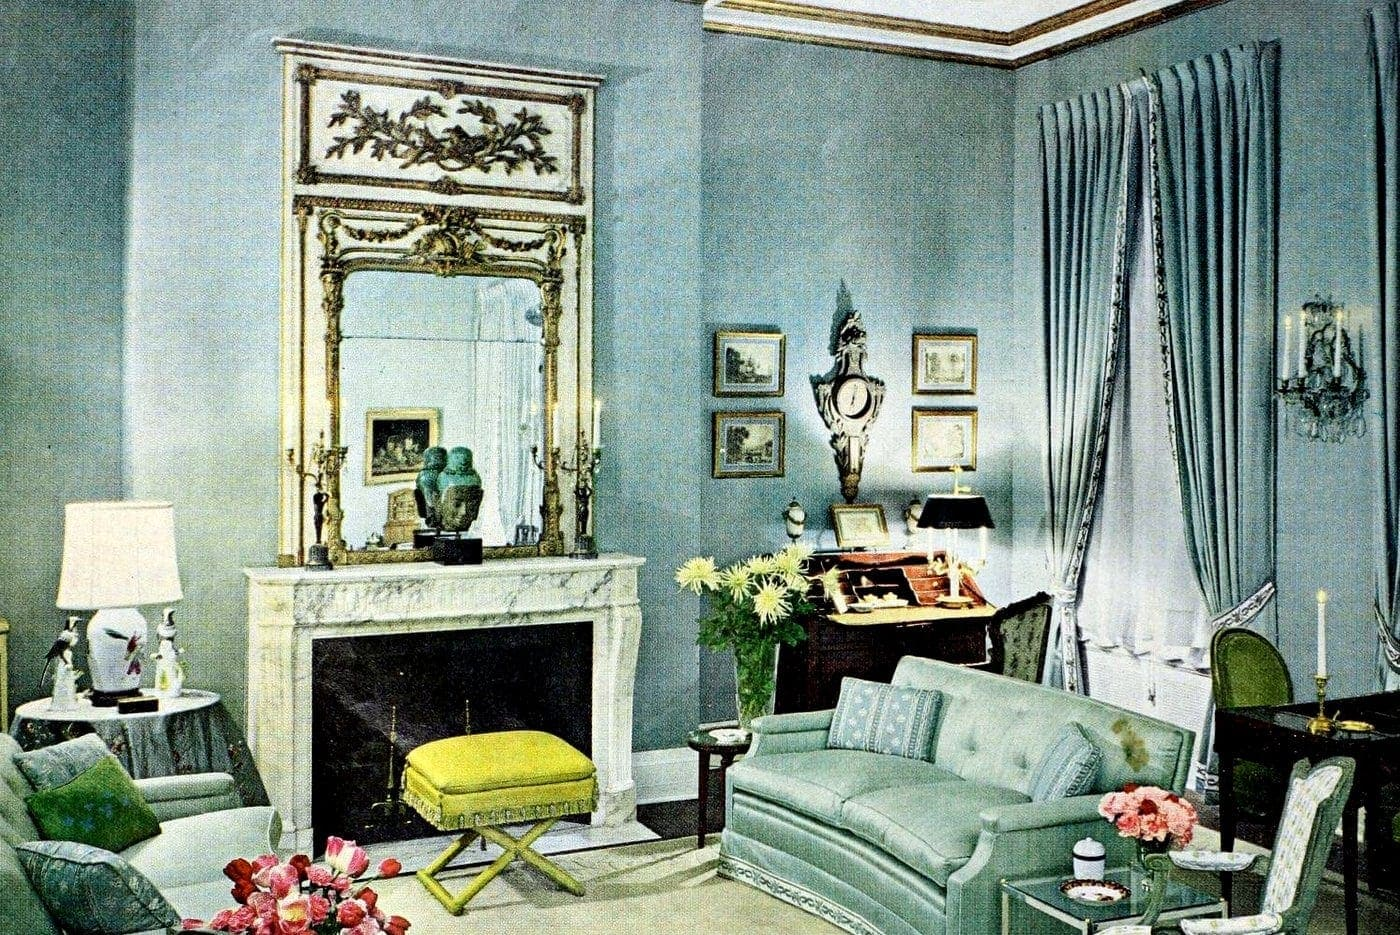 Fantastic old-fashioned fireplaces